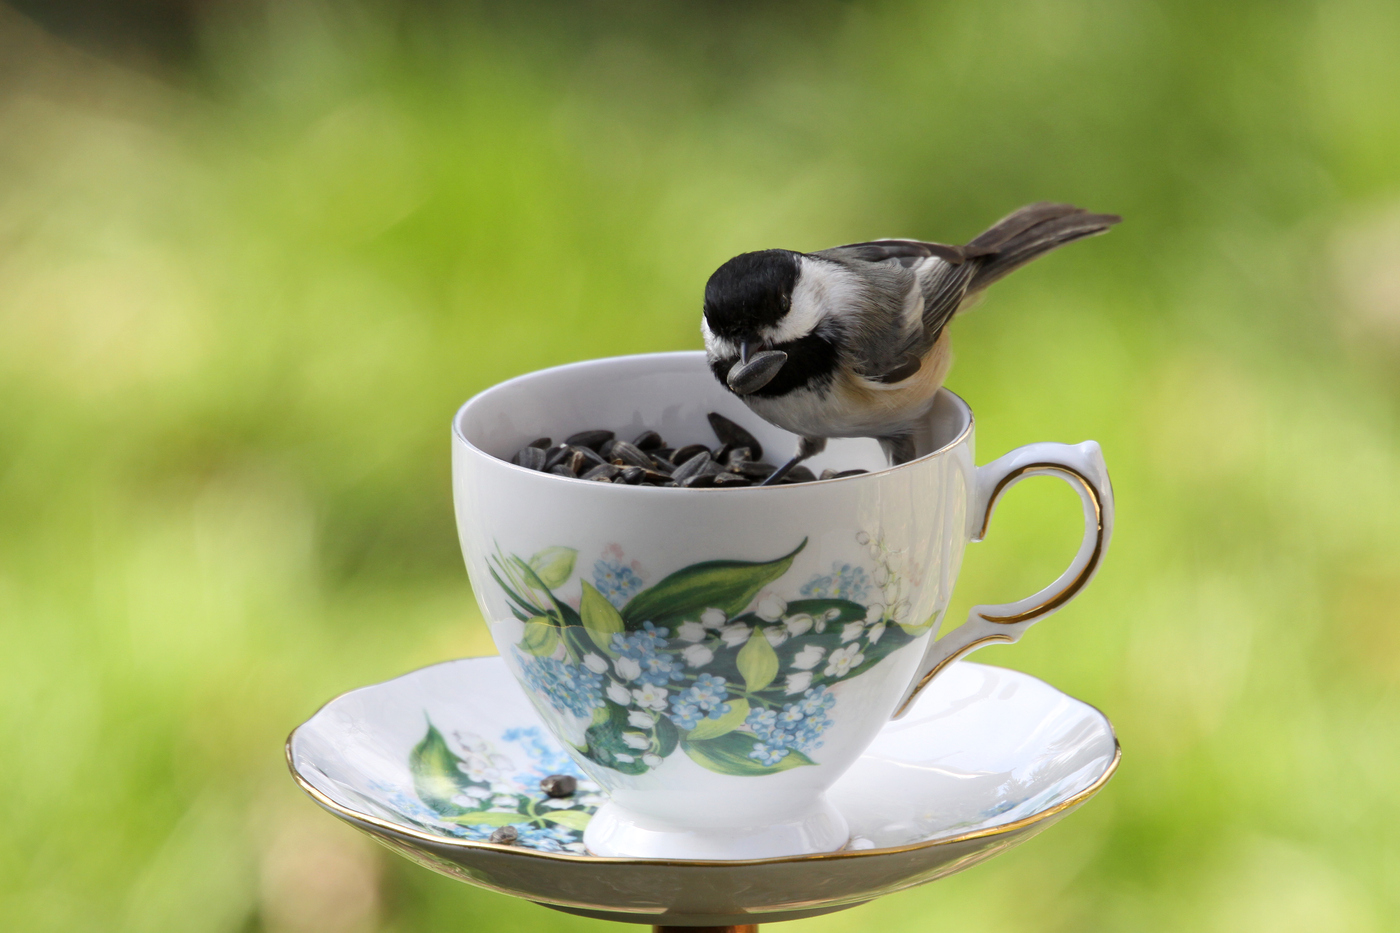 Chickadee at Teacup #18